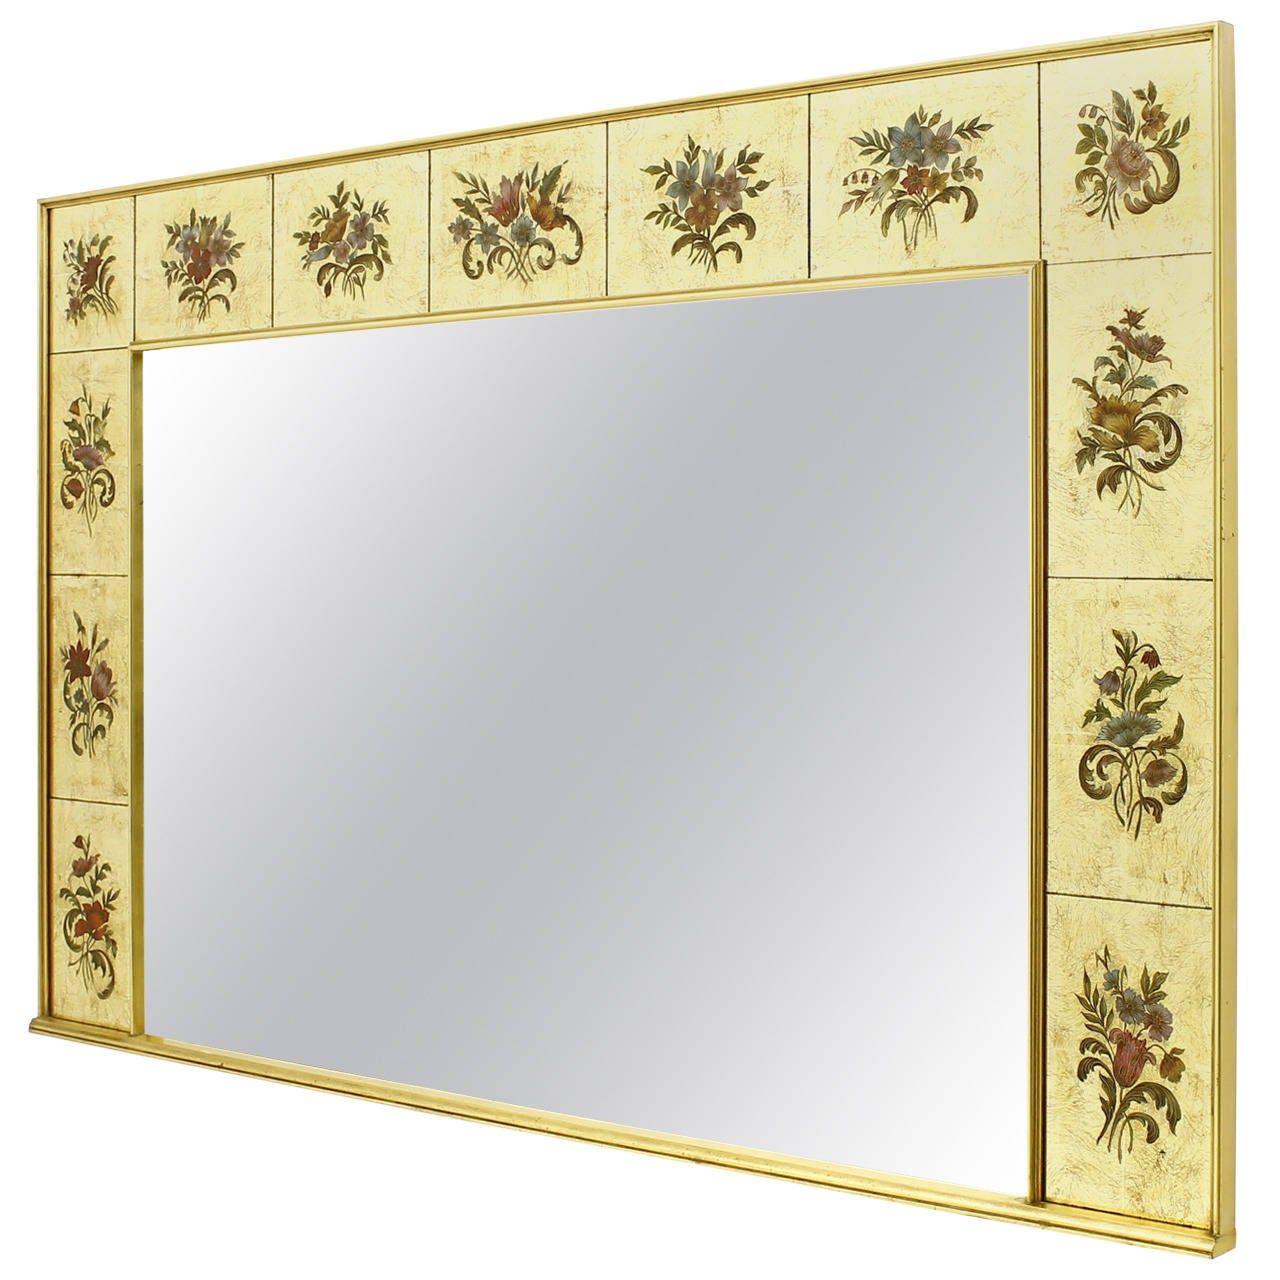 Decorative large mirror from france circa 1980s for sale for Large decorative mirrors for sale